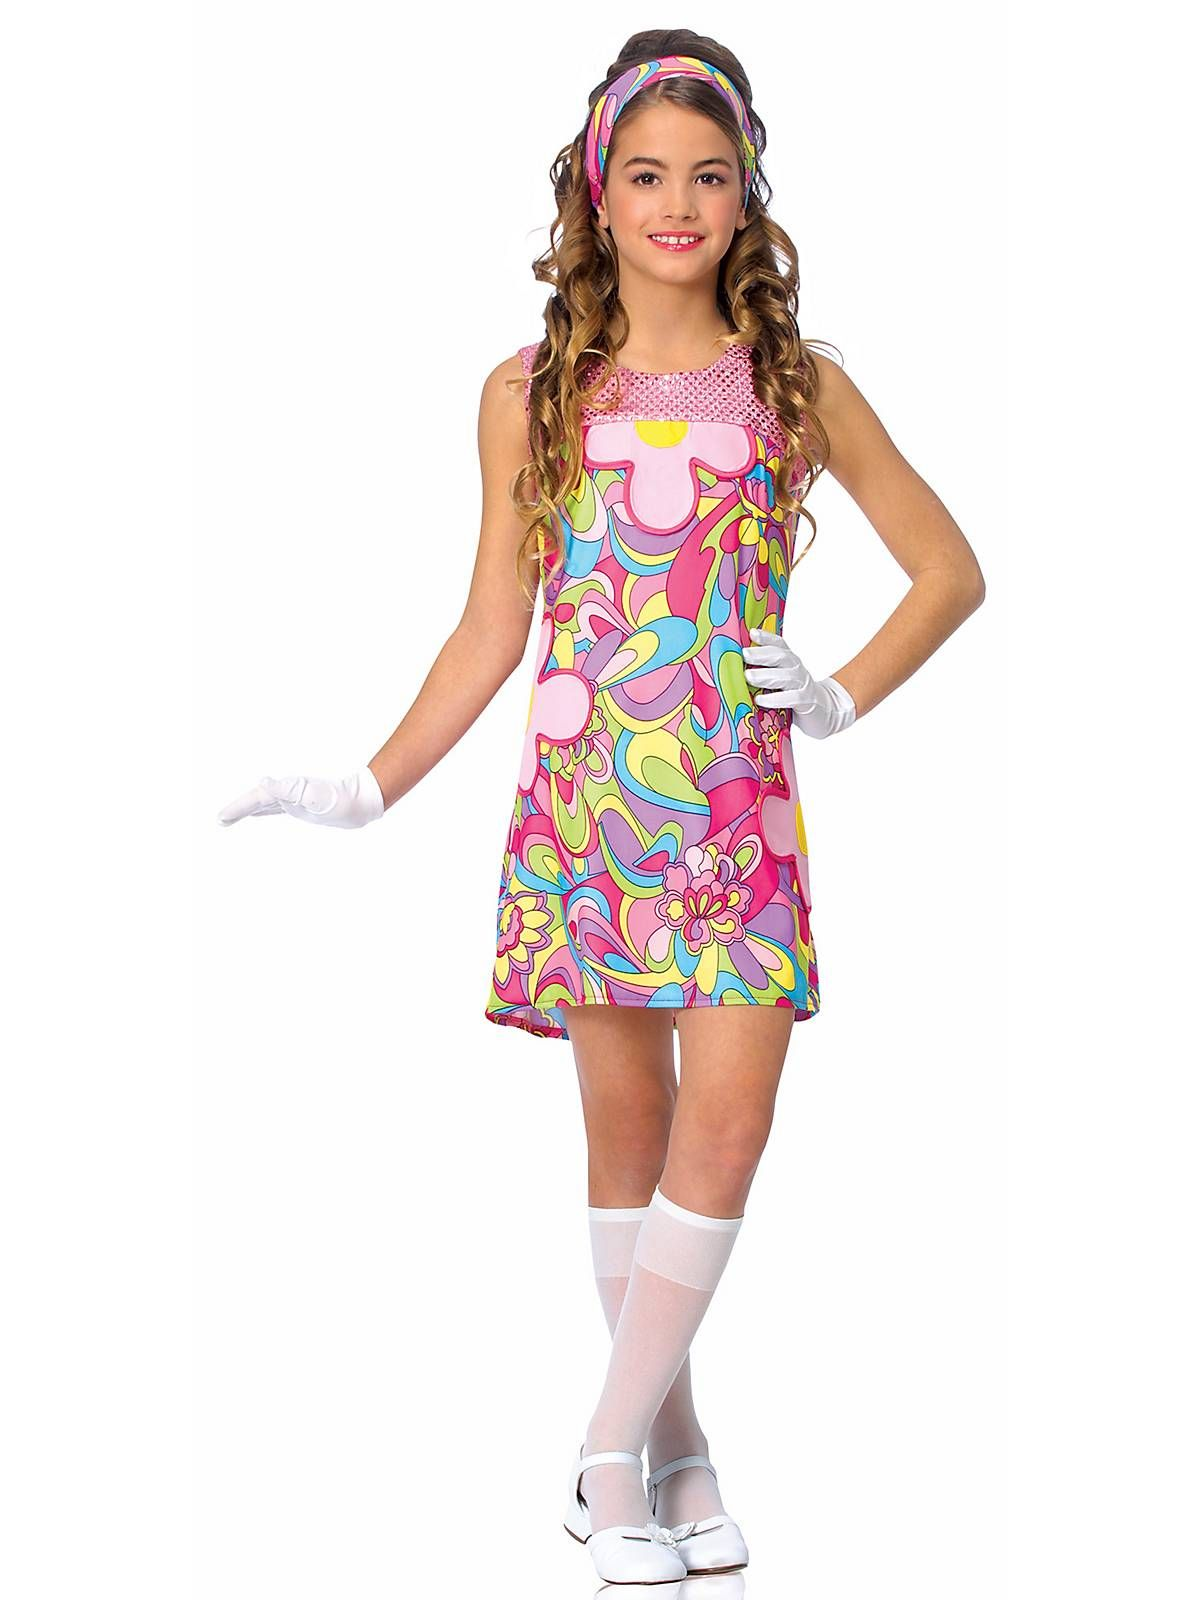 Groovy Child Costume | Cheap 60s Costumes for Girls | 70's ...